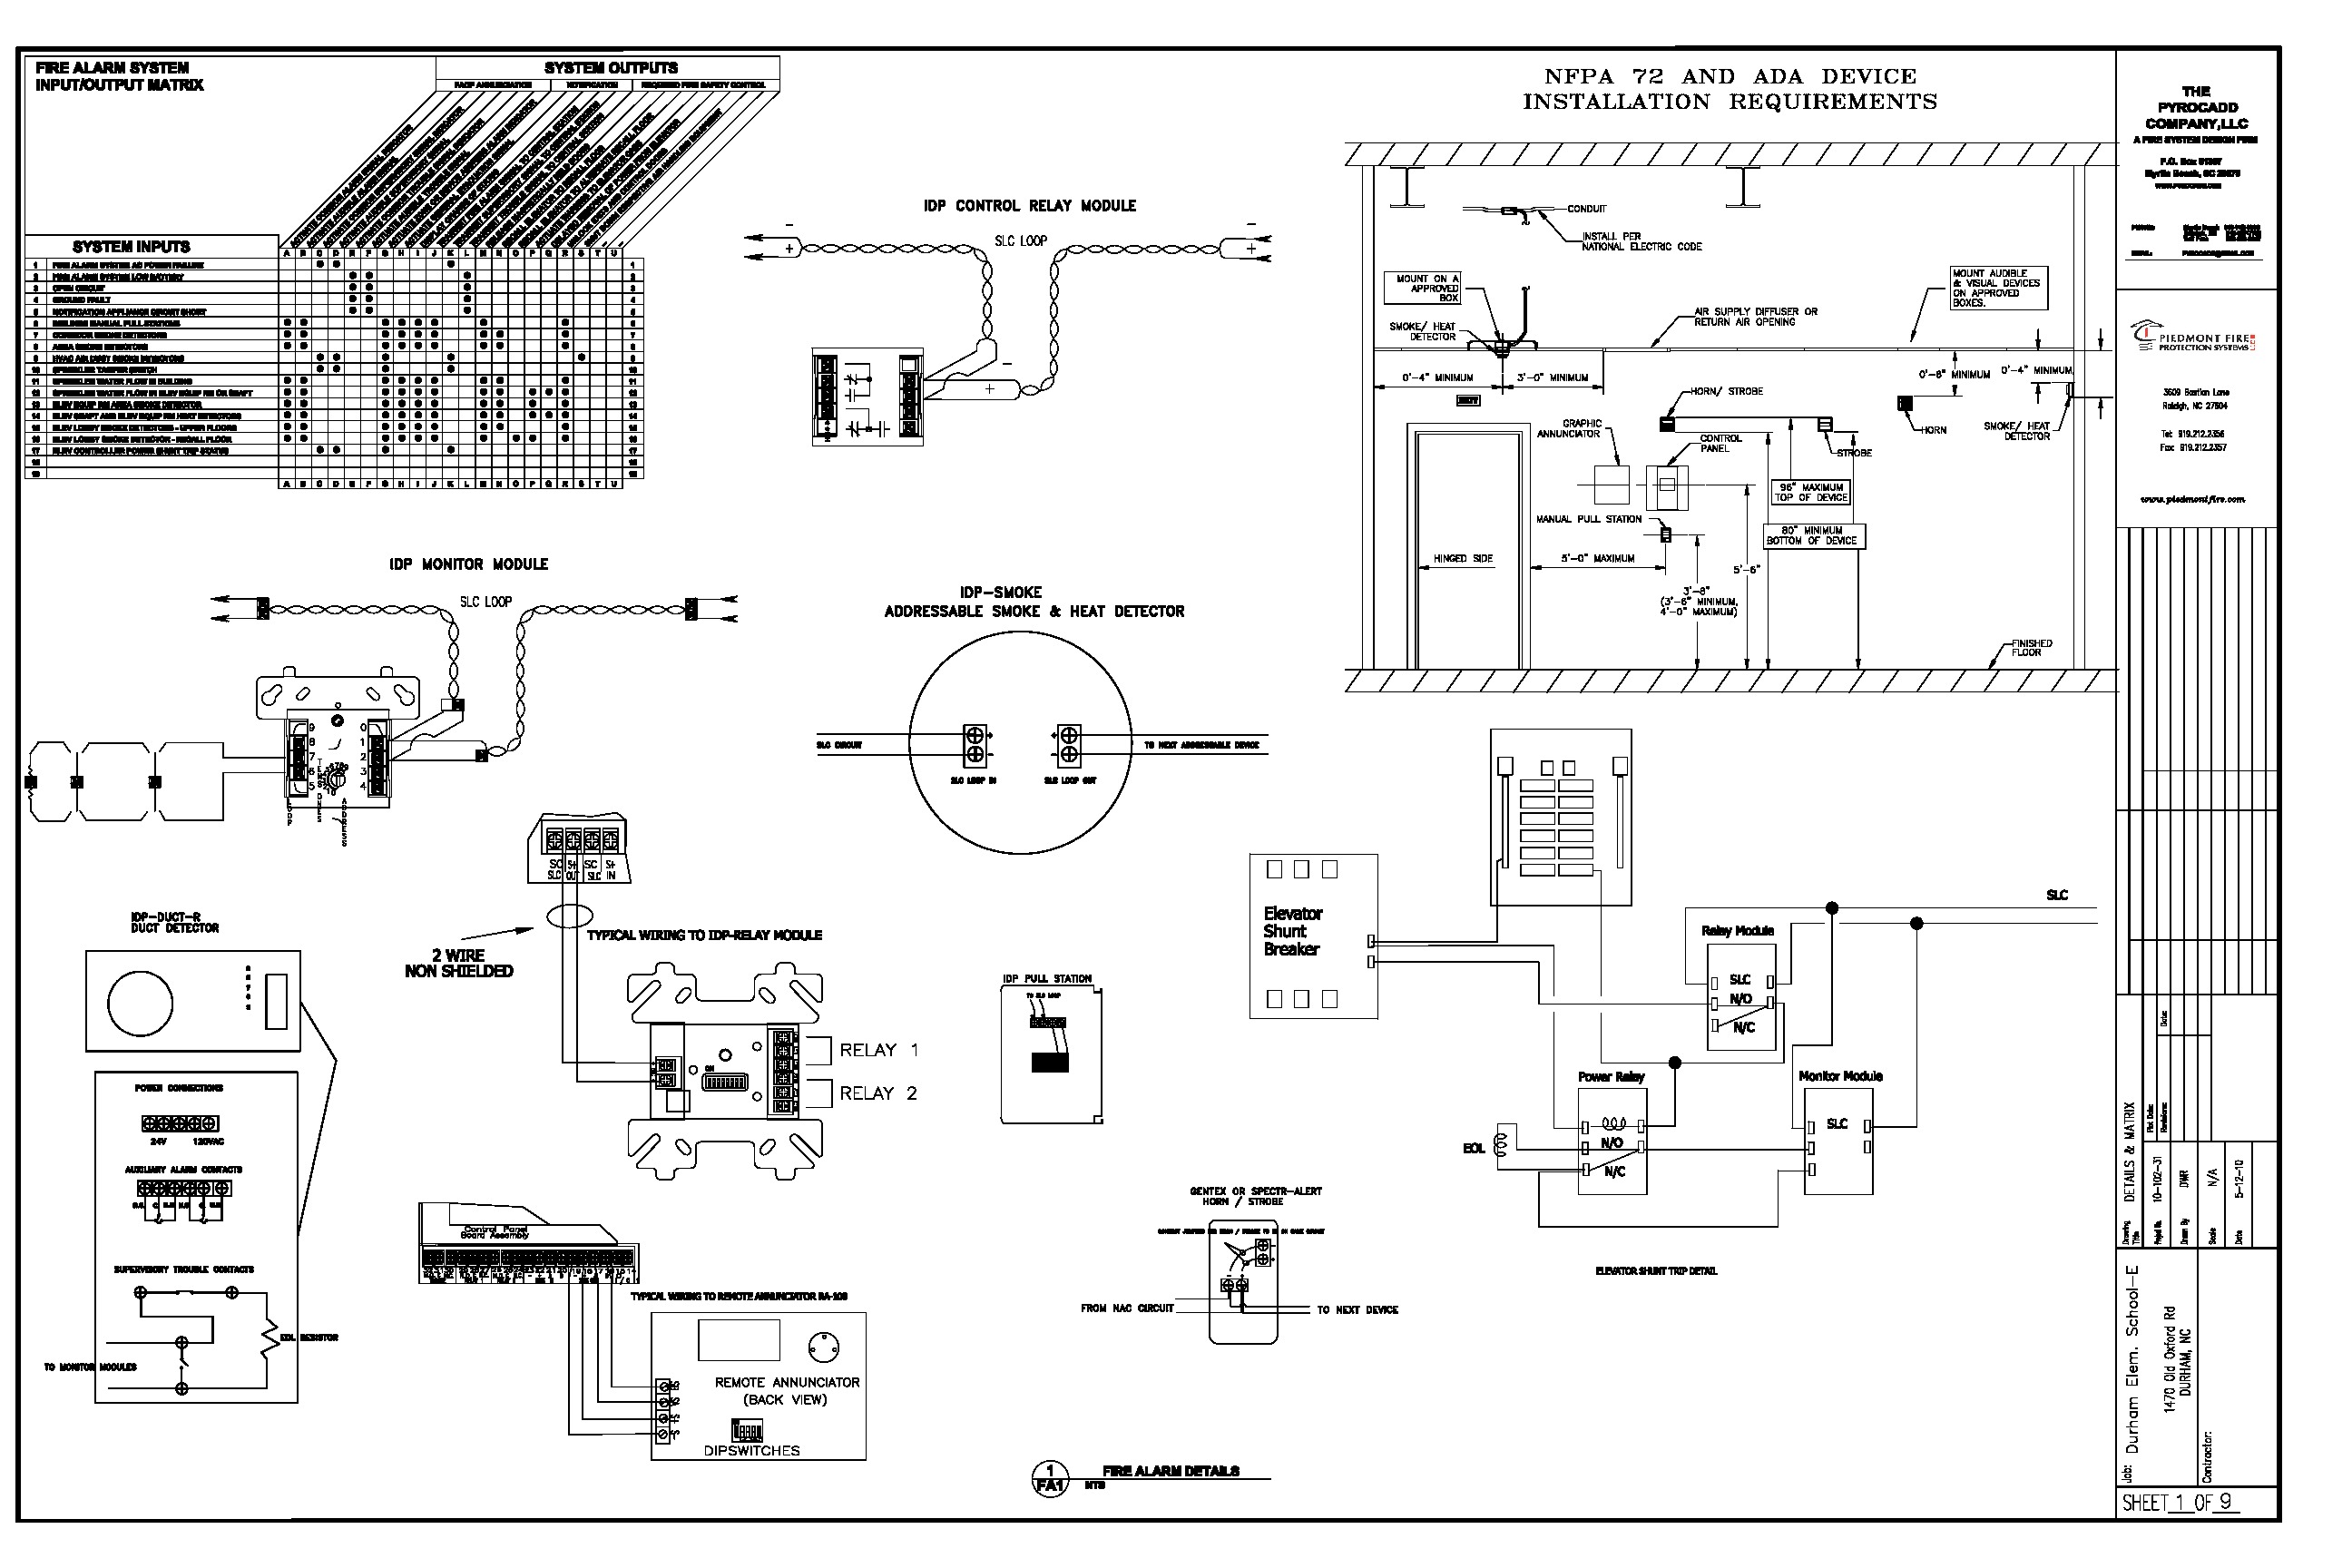 Fire Systems Engineering Fire Alarm System Design